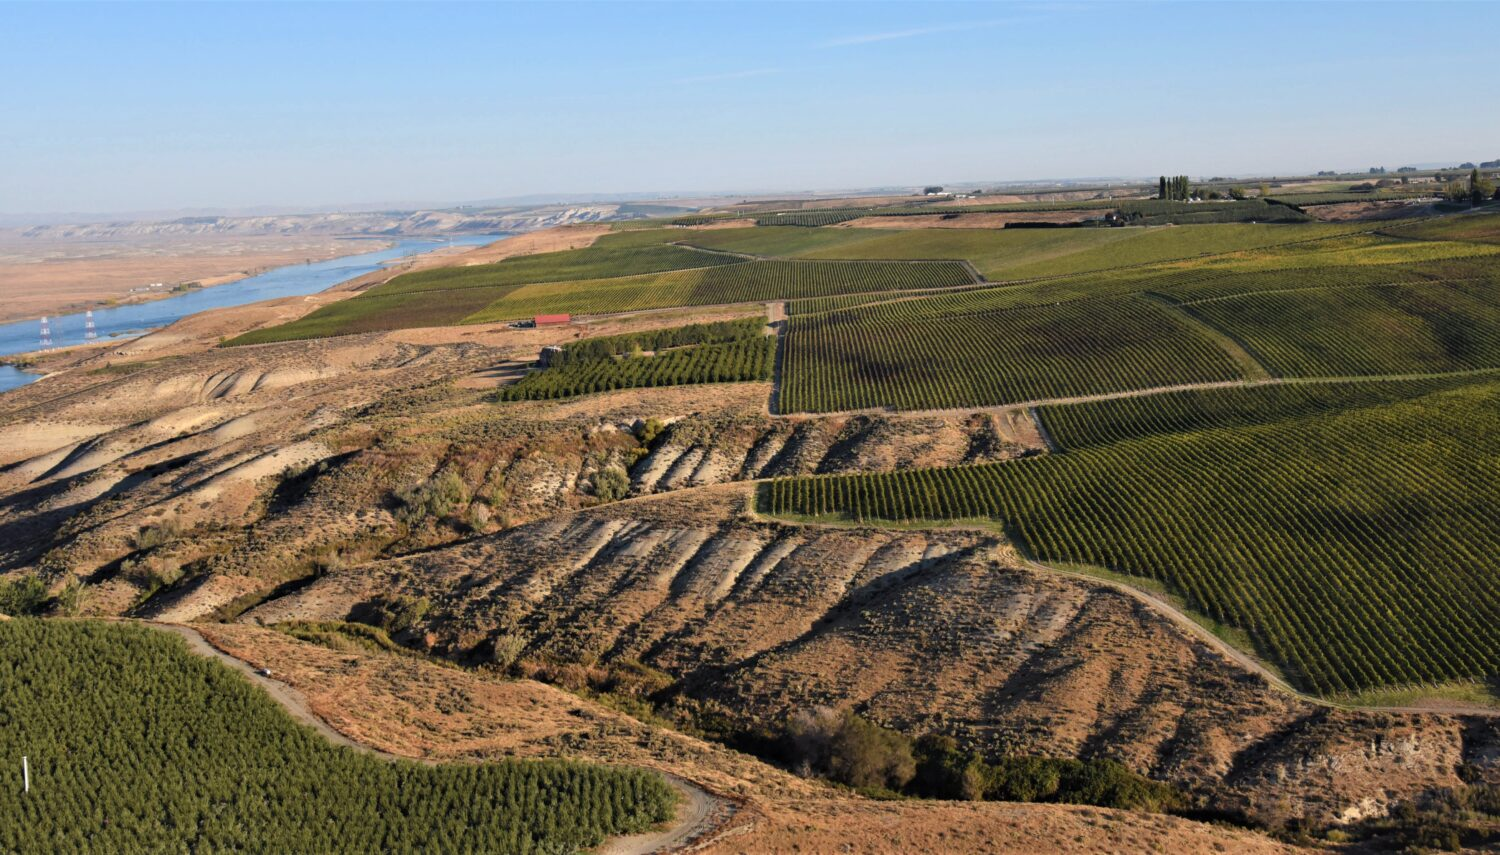 Aerial view of a tan hill sloping down to the left with gullies and rivulets. Green vineyards are above the slope, with a blue sky above.